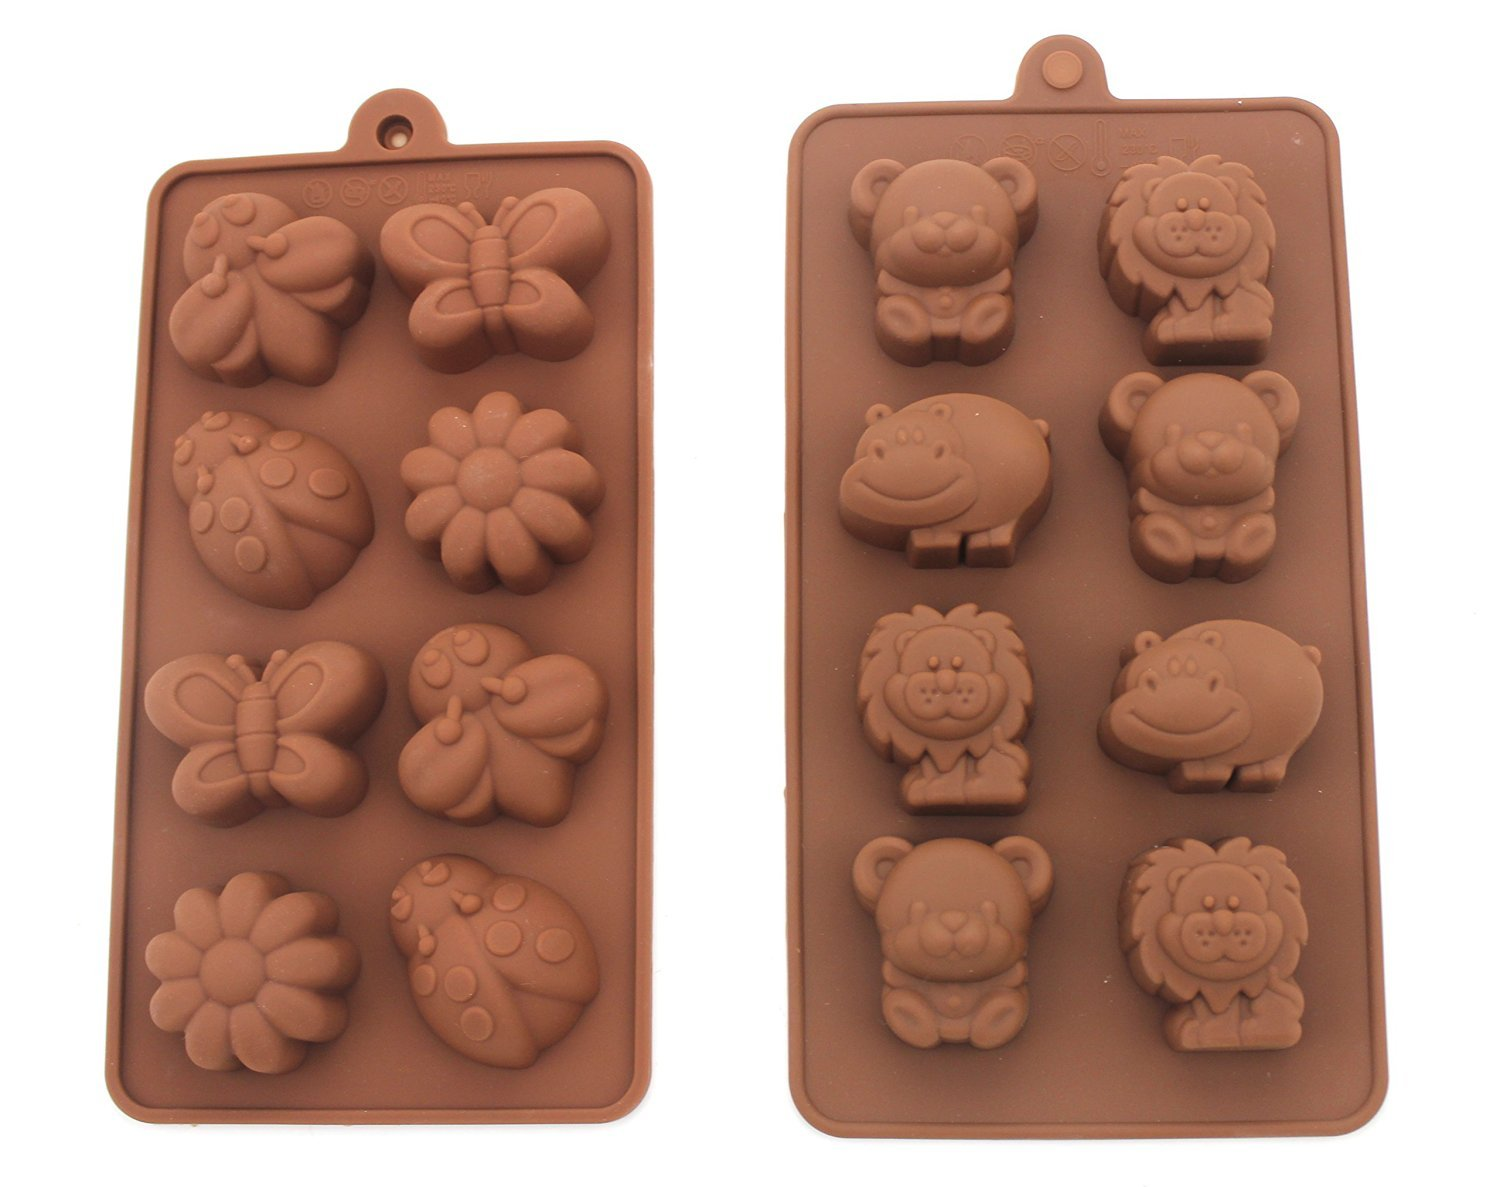 Romani Tech Non-Stick Candy, Chocolate, Jelly Silicone, Soap, Silicone Baking Molds, Forest Theme Animal and Insect Molds, Happy Bear, Lion, Hippo and Bee, Butterfly, Set of 2